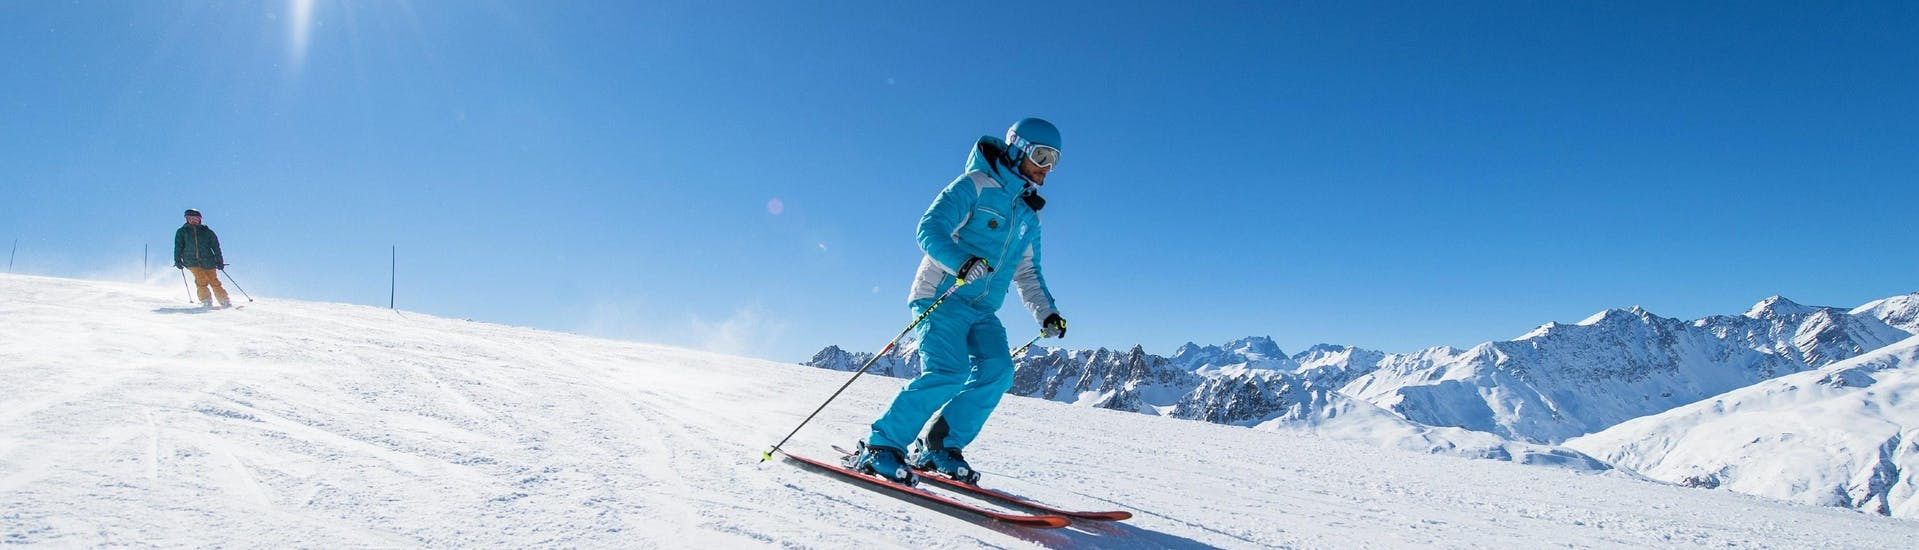 A ski instructor from the ski school ESI Ski Family in Val Thorens is leading the way during Private Ski Lessons for Adults of All Levels - Morning.